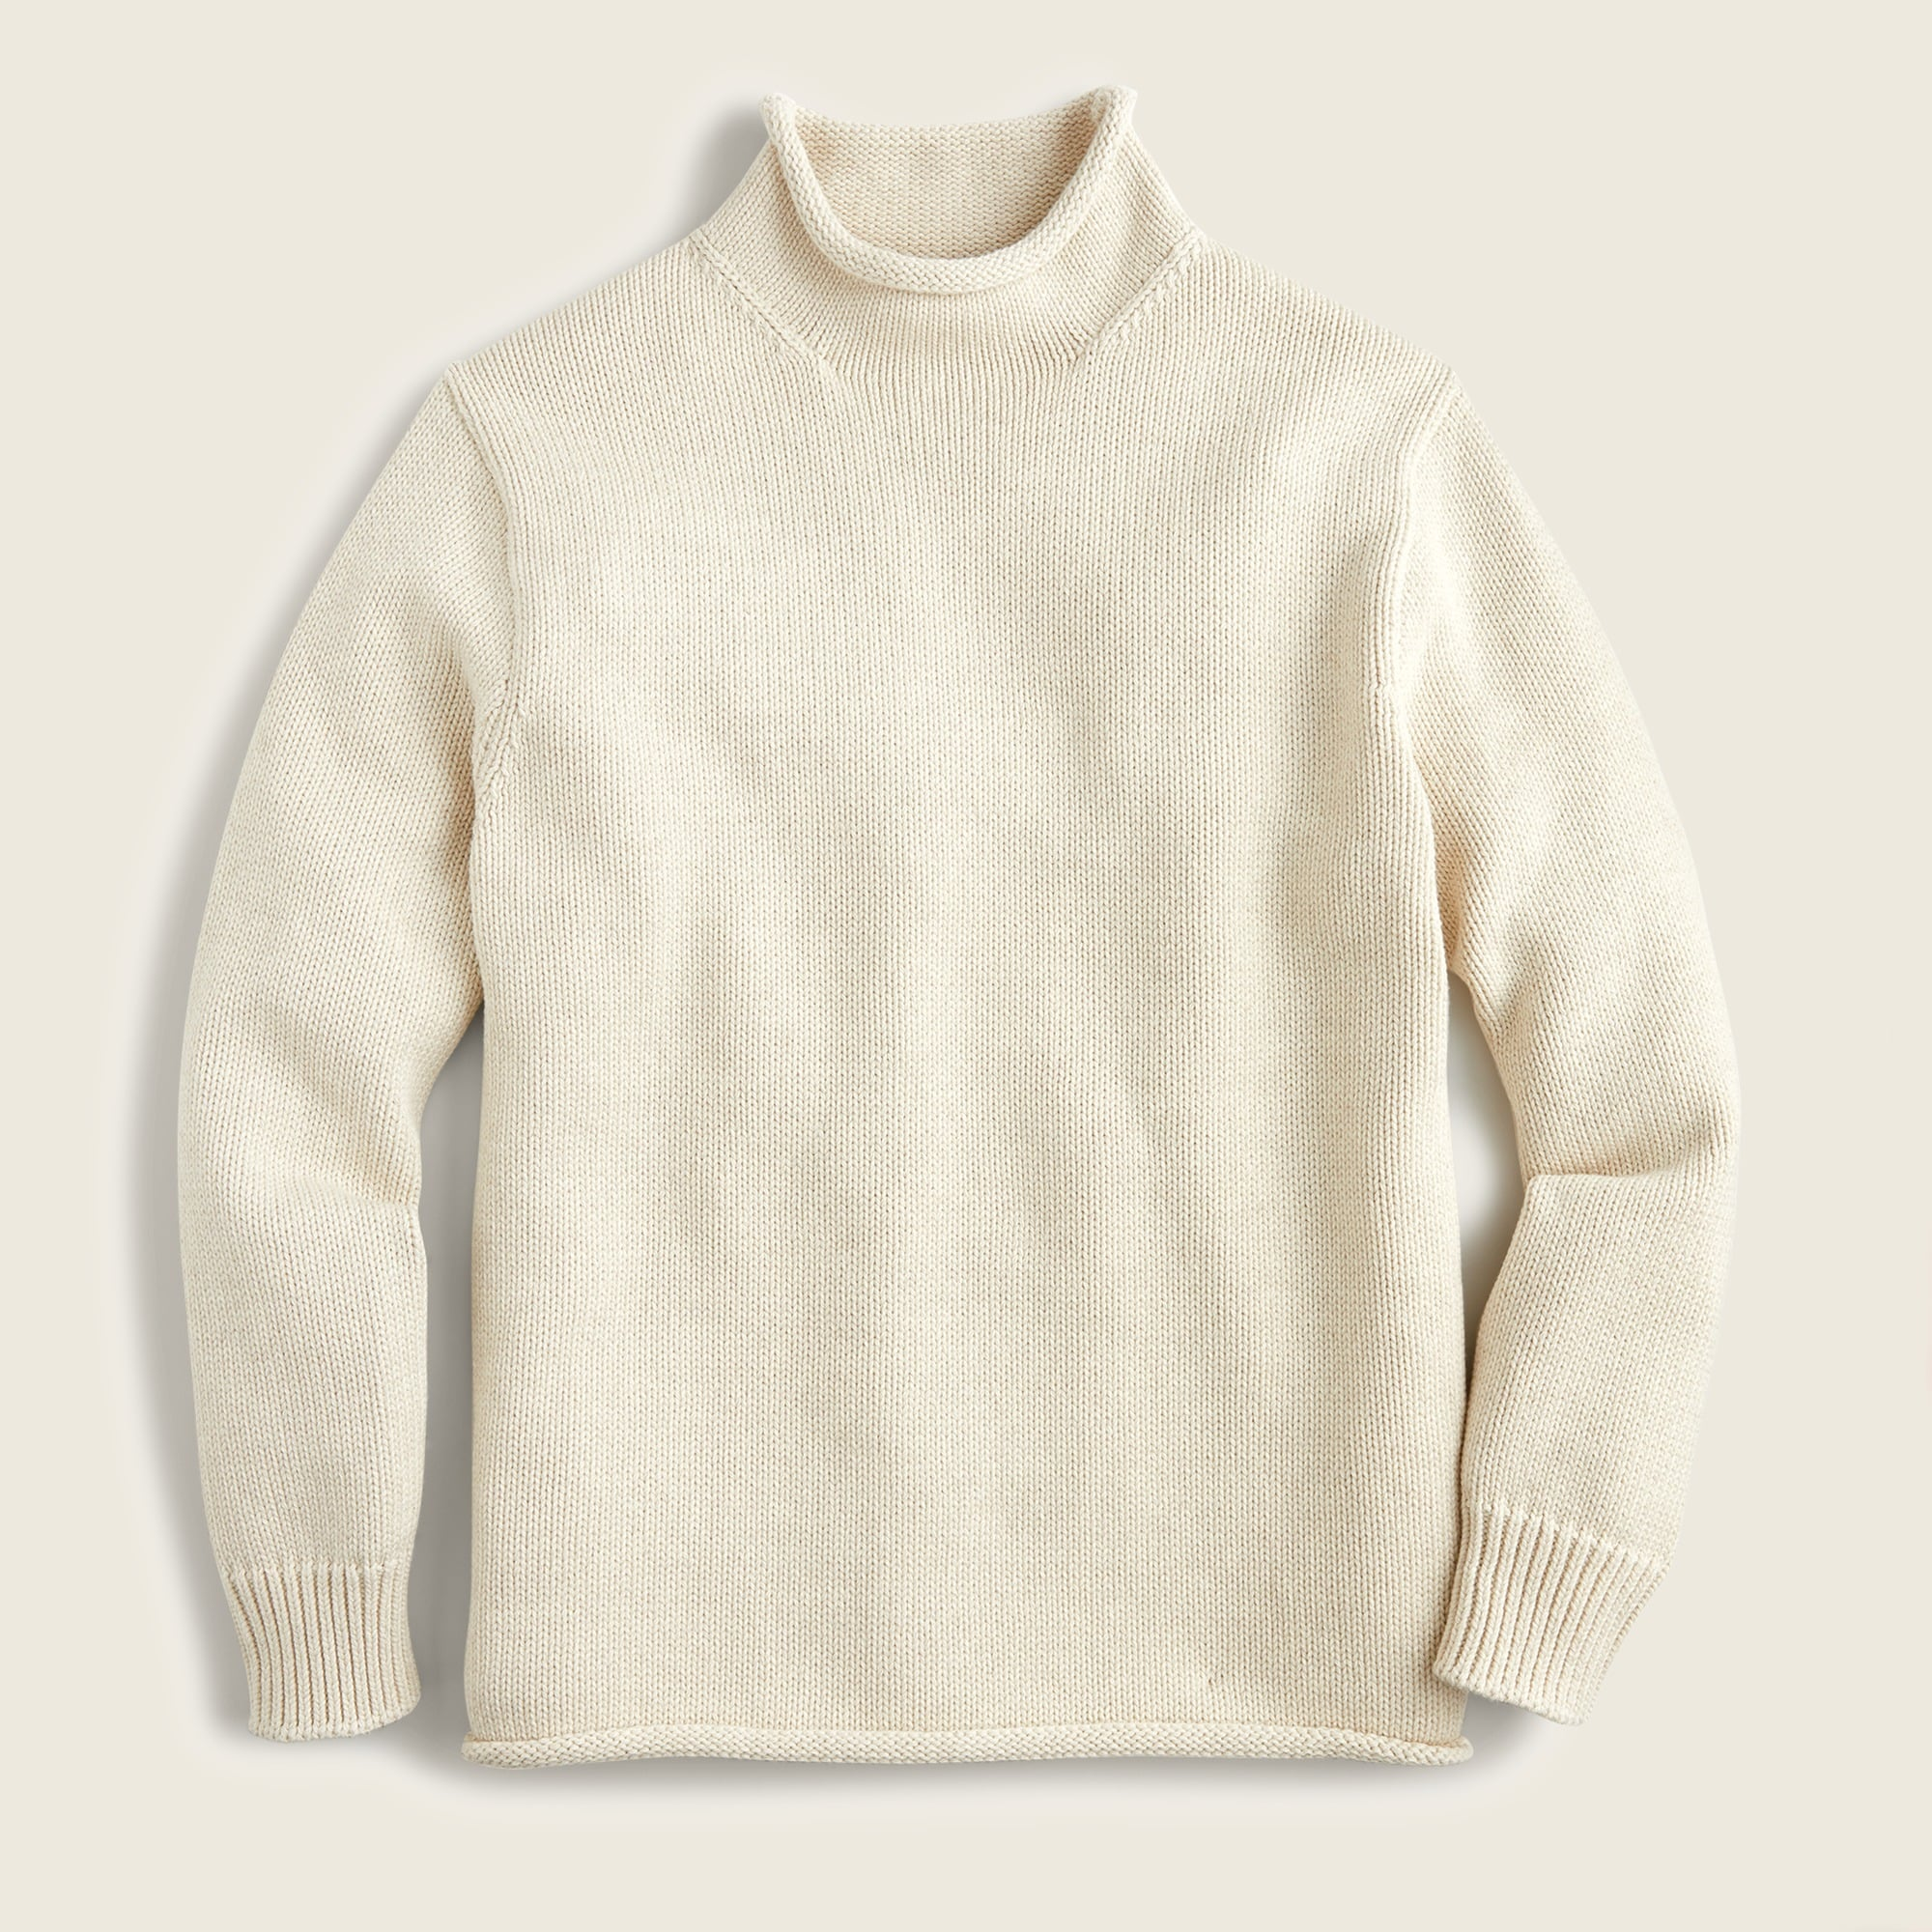 mens Unisex 1988 cotton rollneck™ sweater